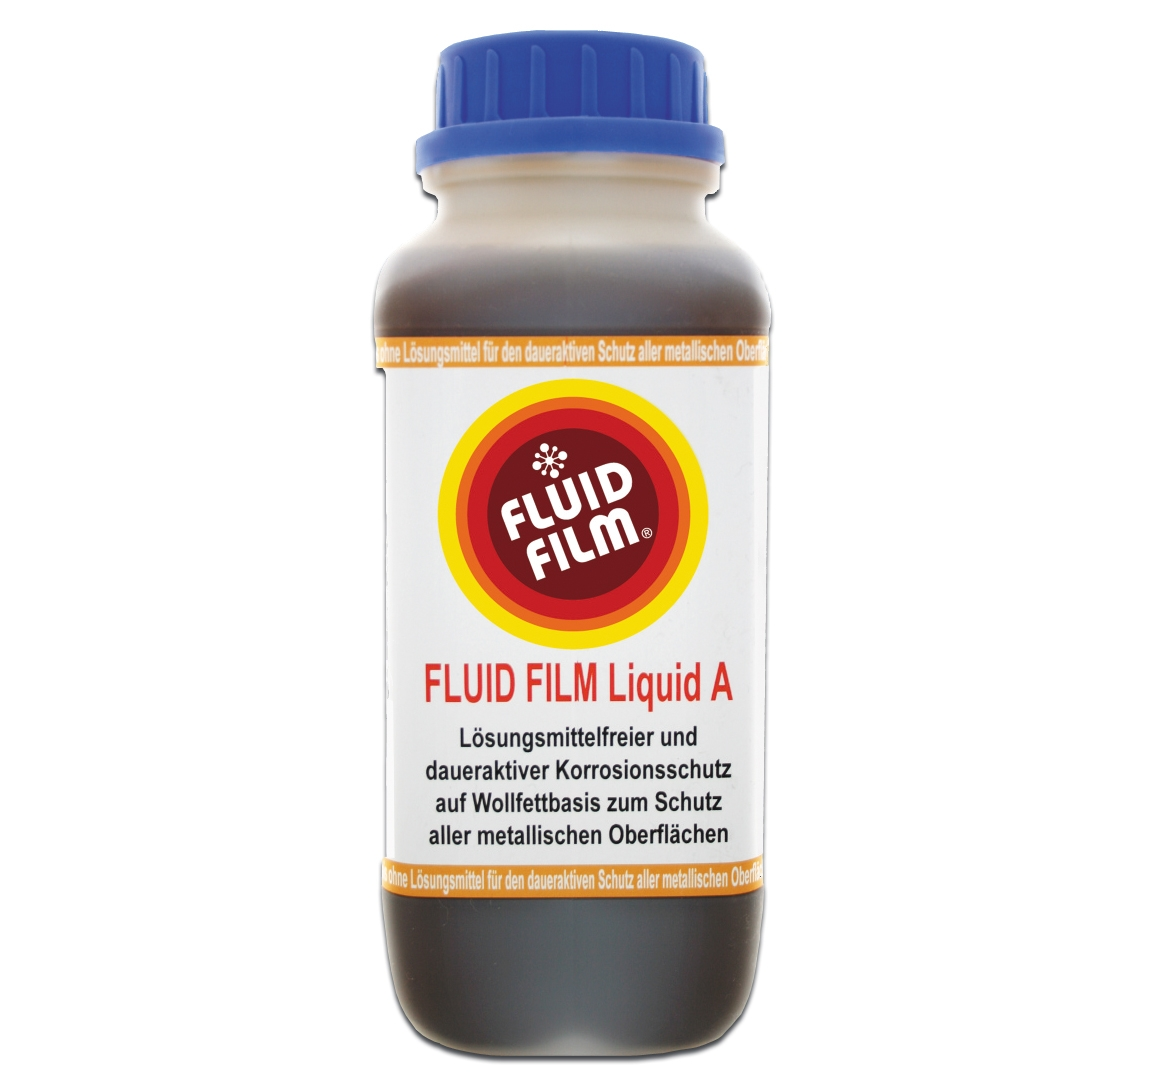 Fluid Film Liquid-A